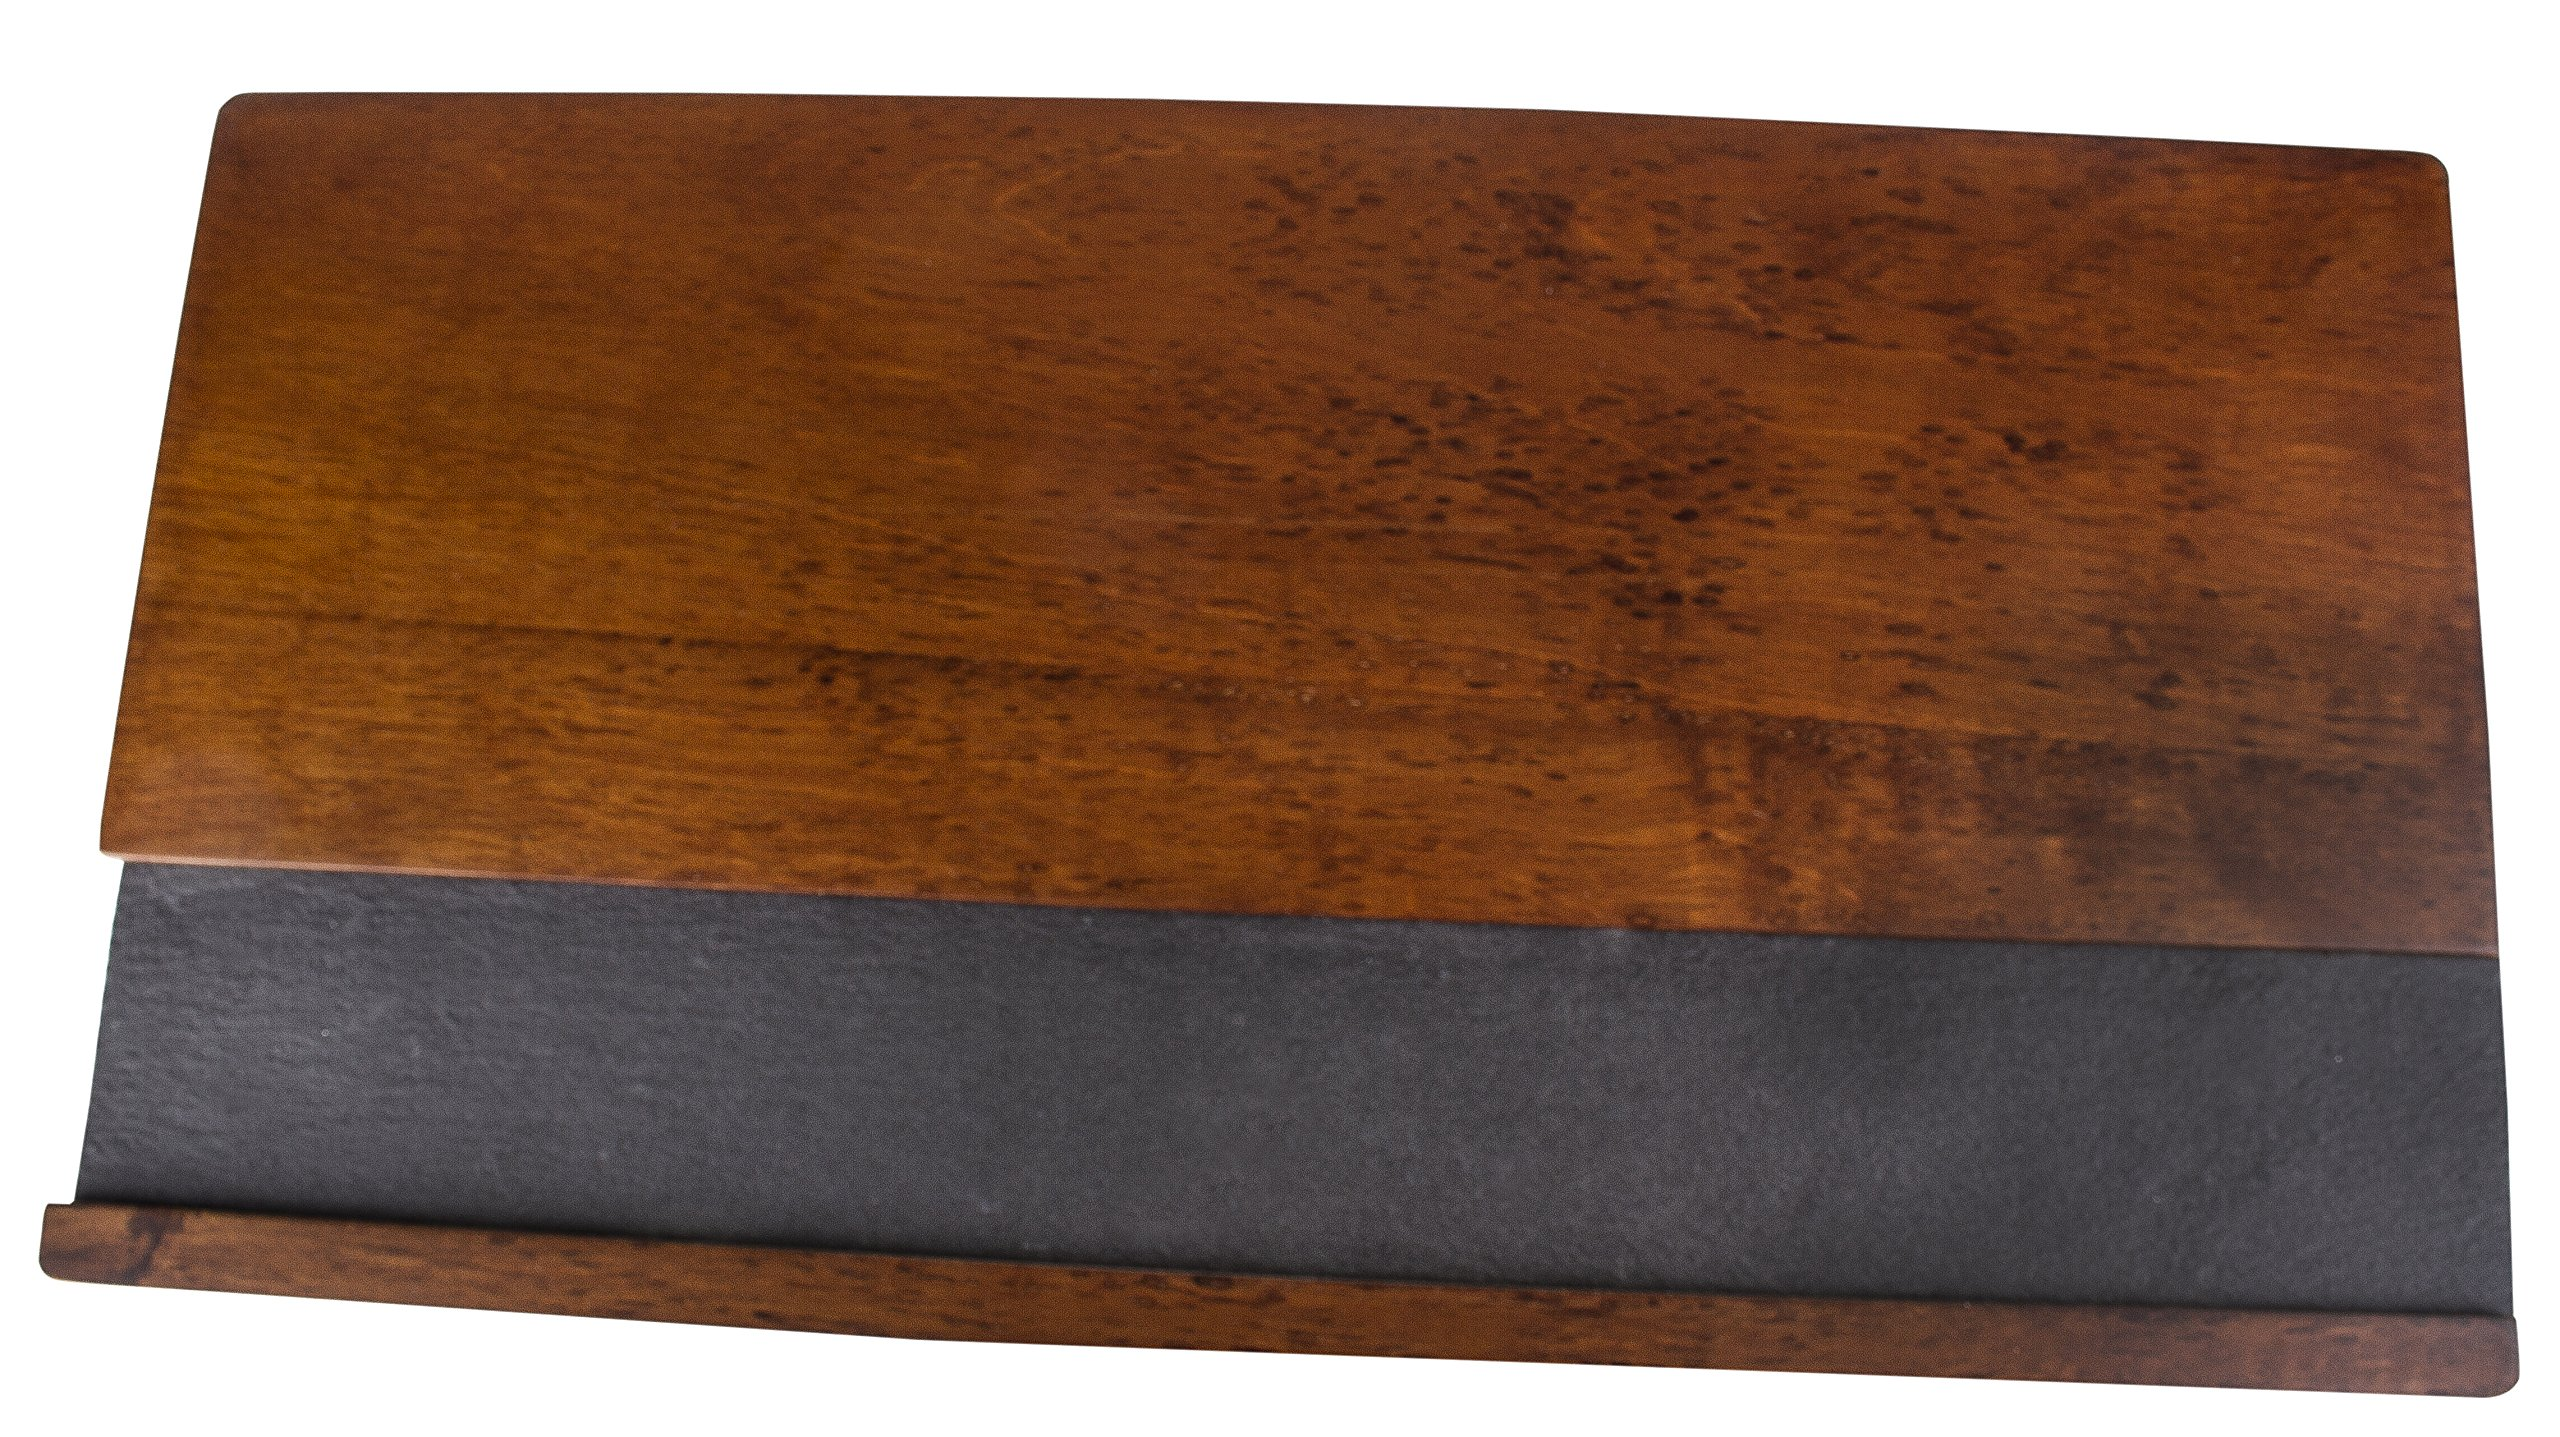 Solid Wood Reservoir /& Drainage Type Kung Fu GongFu Tea Table Serving Tray L18.03 x W11.34 x H2.36 45.8CM X 28.8CM X 6CM